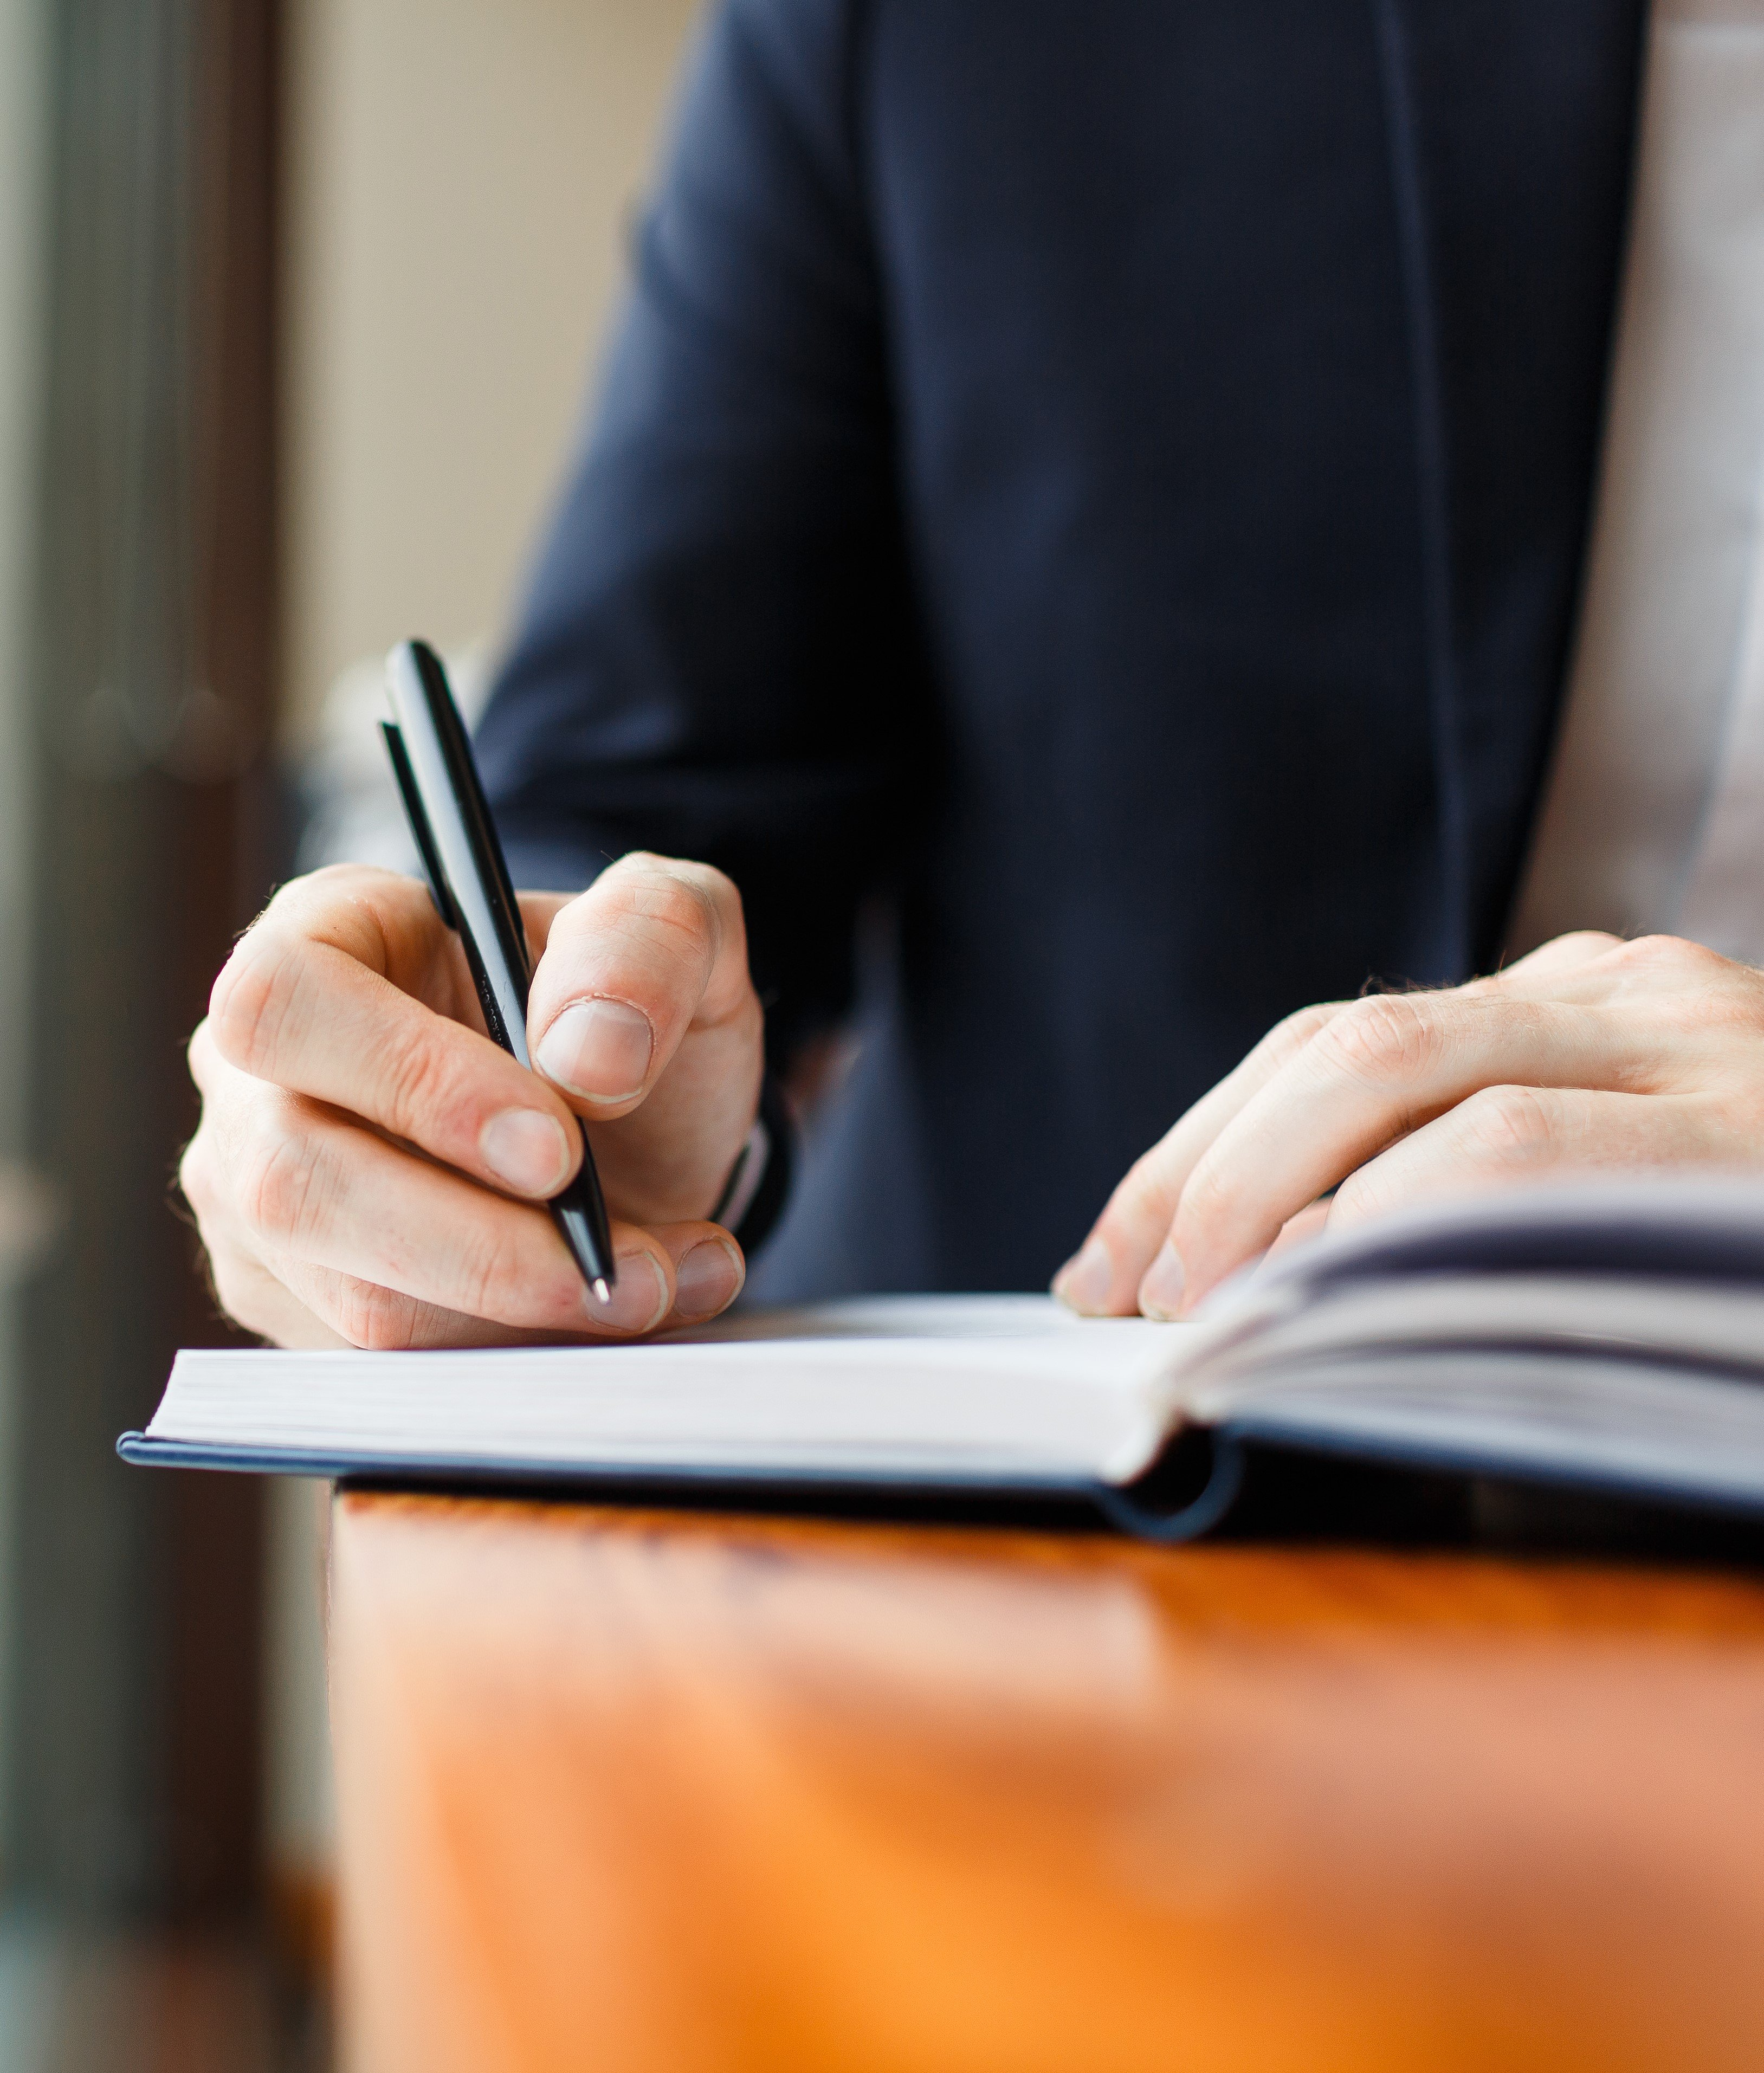 Man's hand writing in a notebook